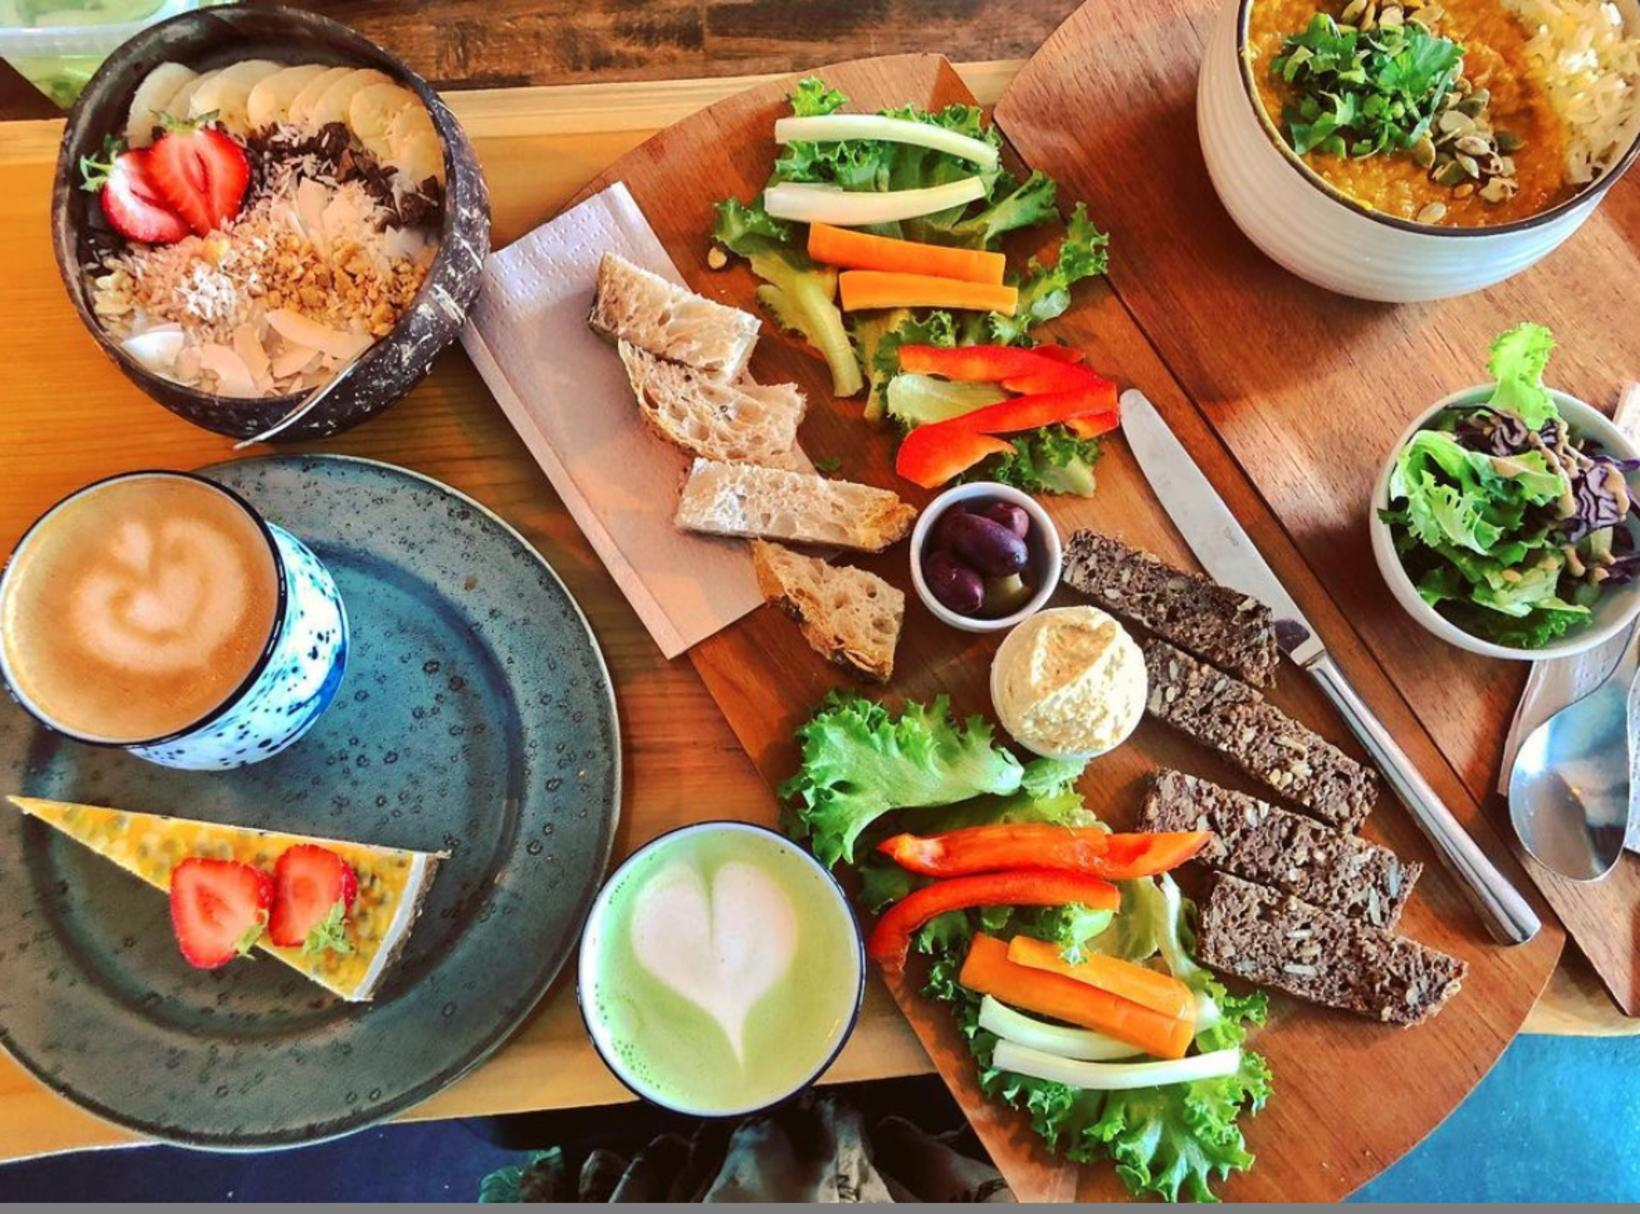 Delicious plant-based food made with love.